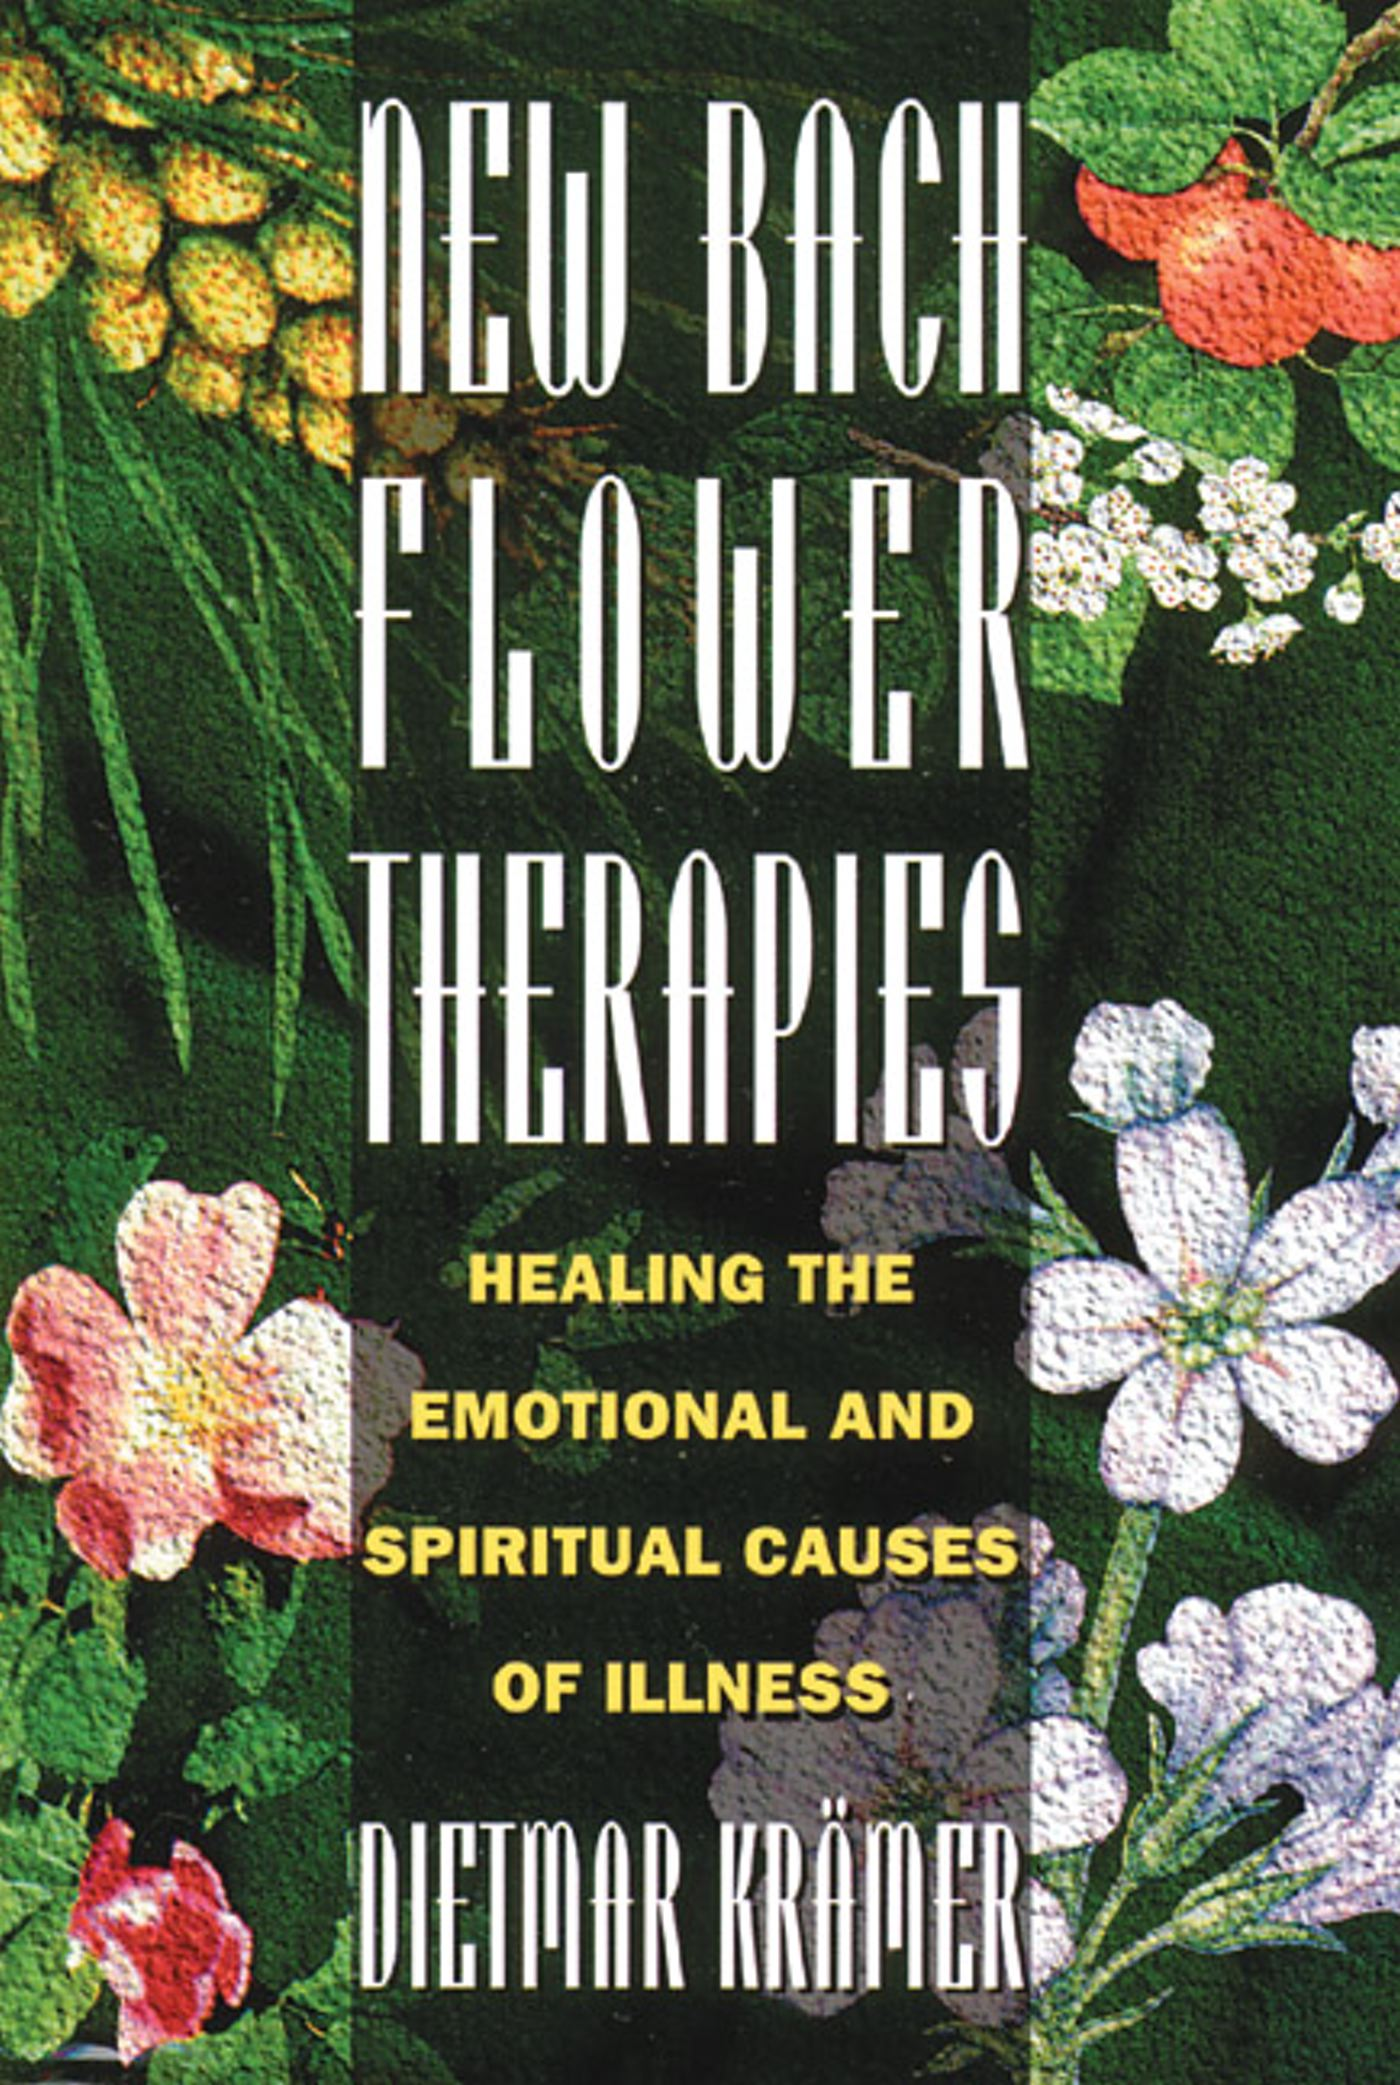 New-bach-flower-therapies-9780892815296_hr